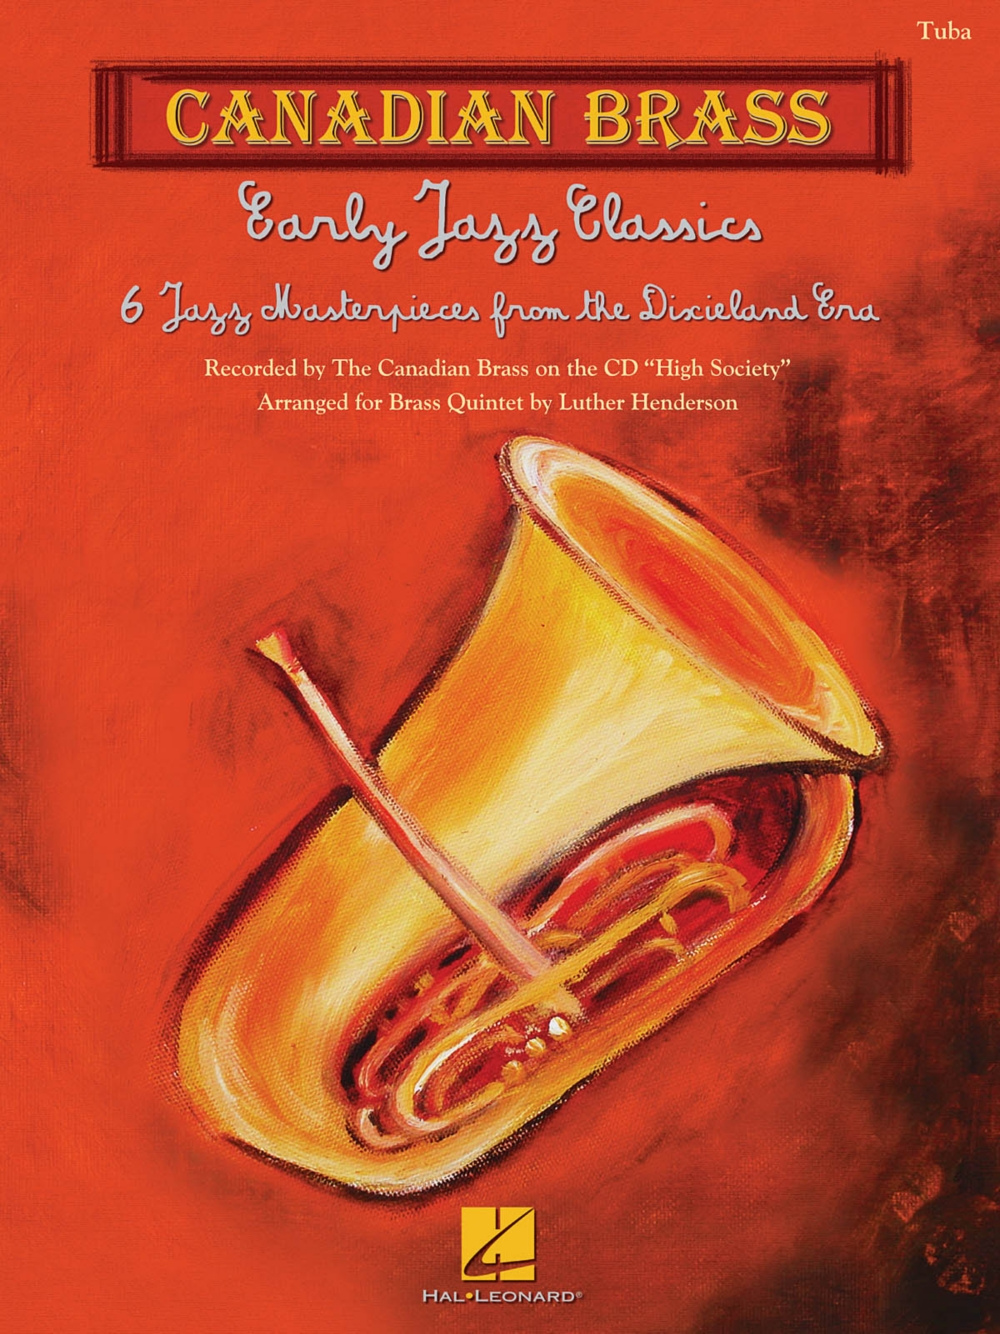 Canadian Brass Early Jazz Classics (Canadian Brass Quintets Tuba (B.C.)) Brass Ensemble... by